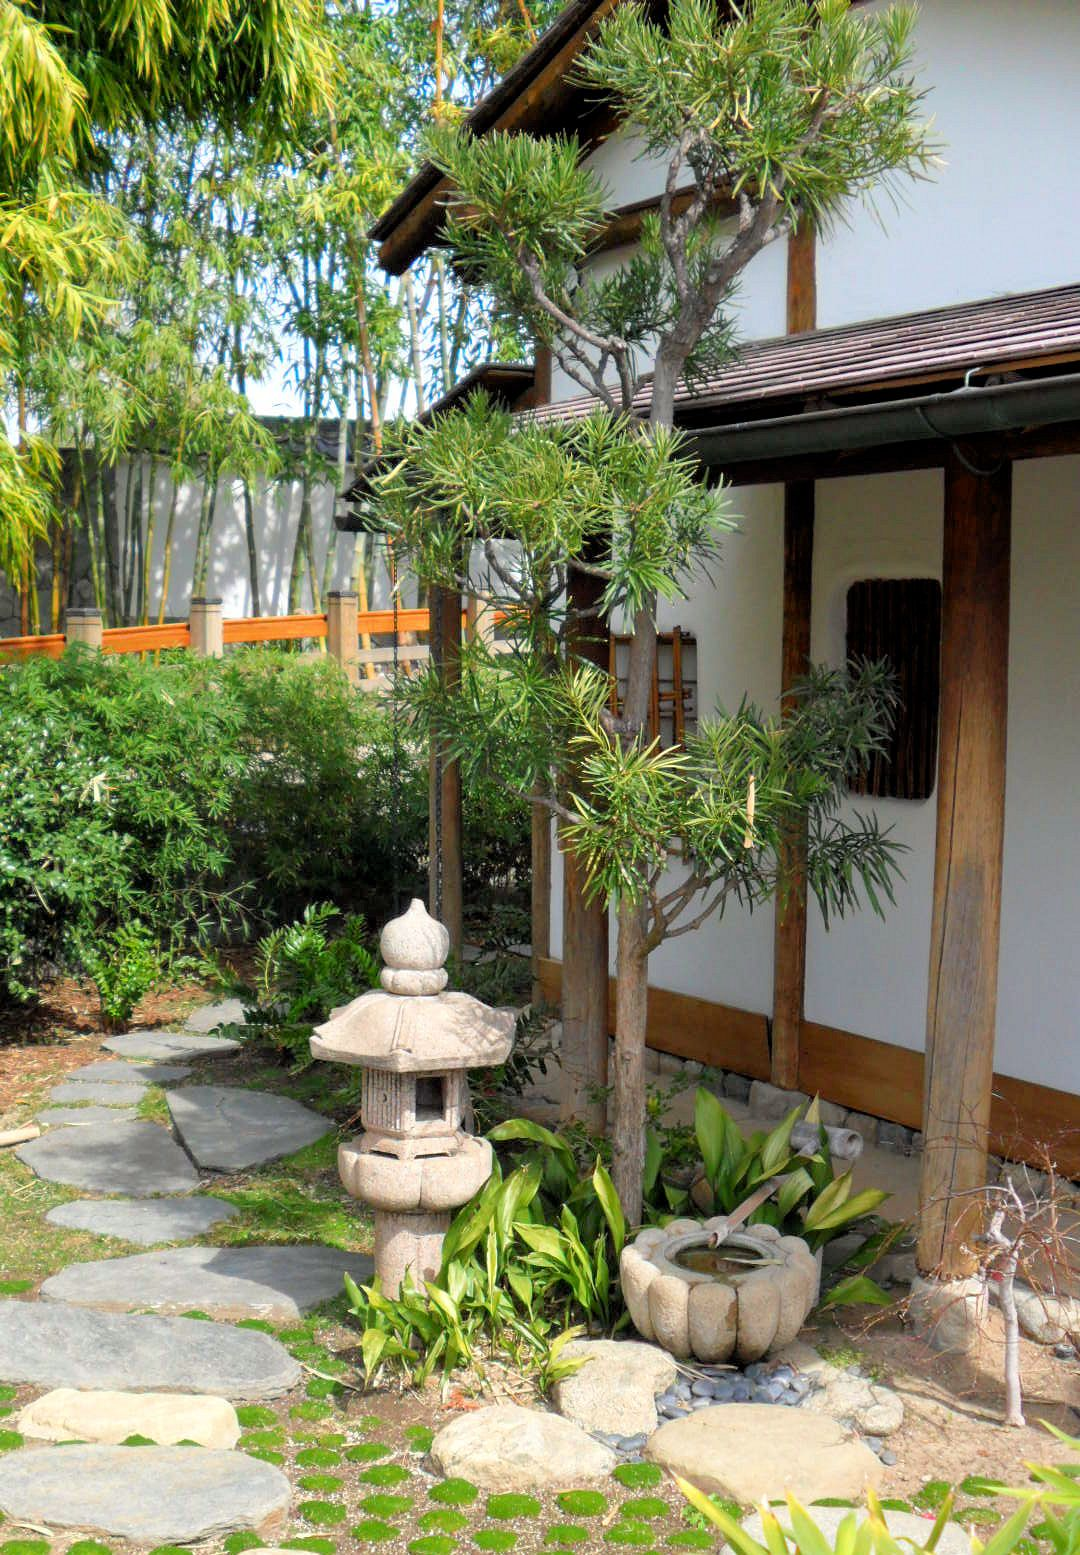 Lawn And Garden Decor With Proper Landscape Design